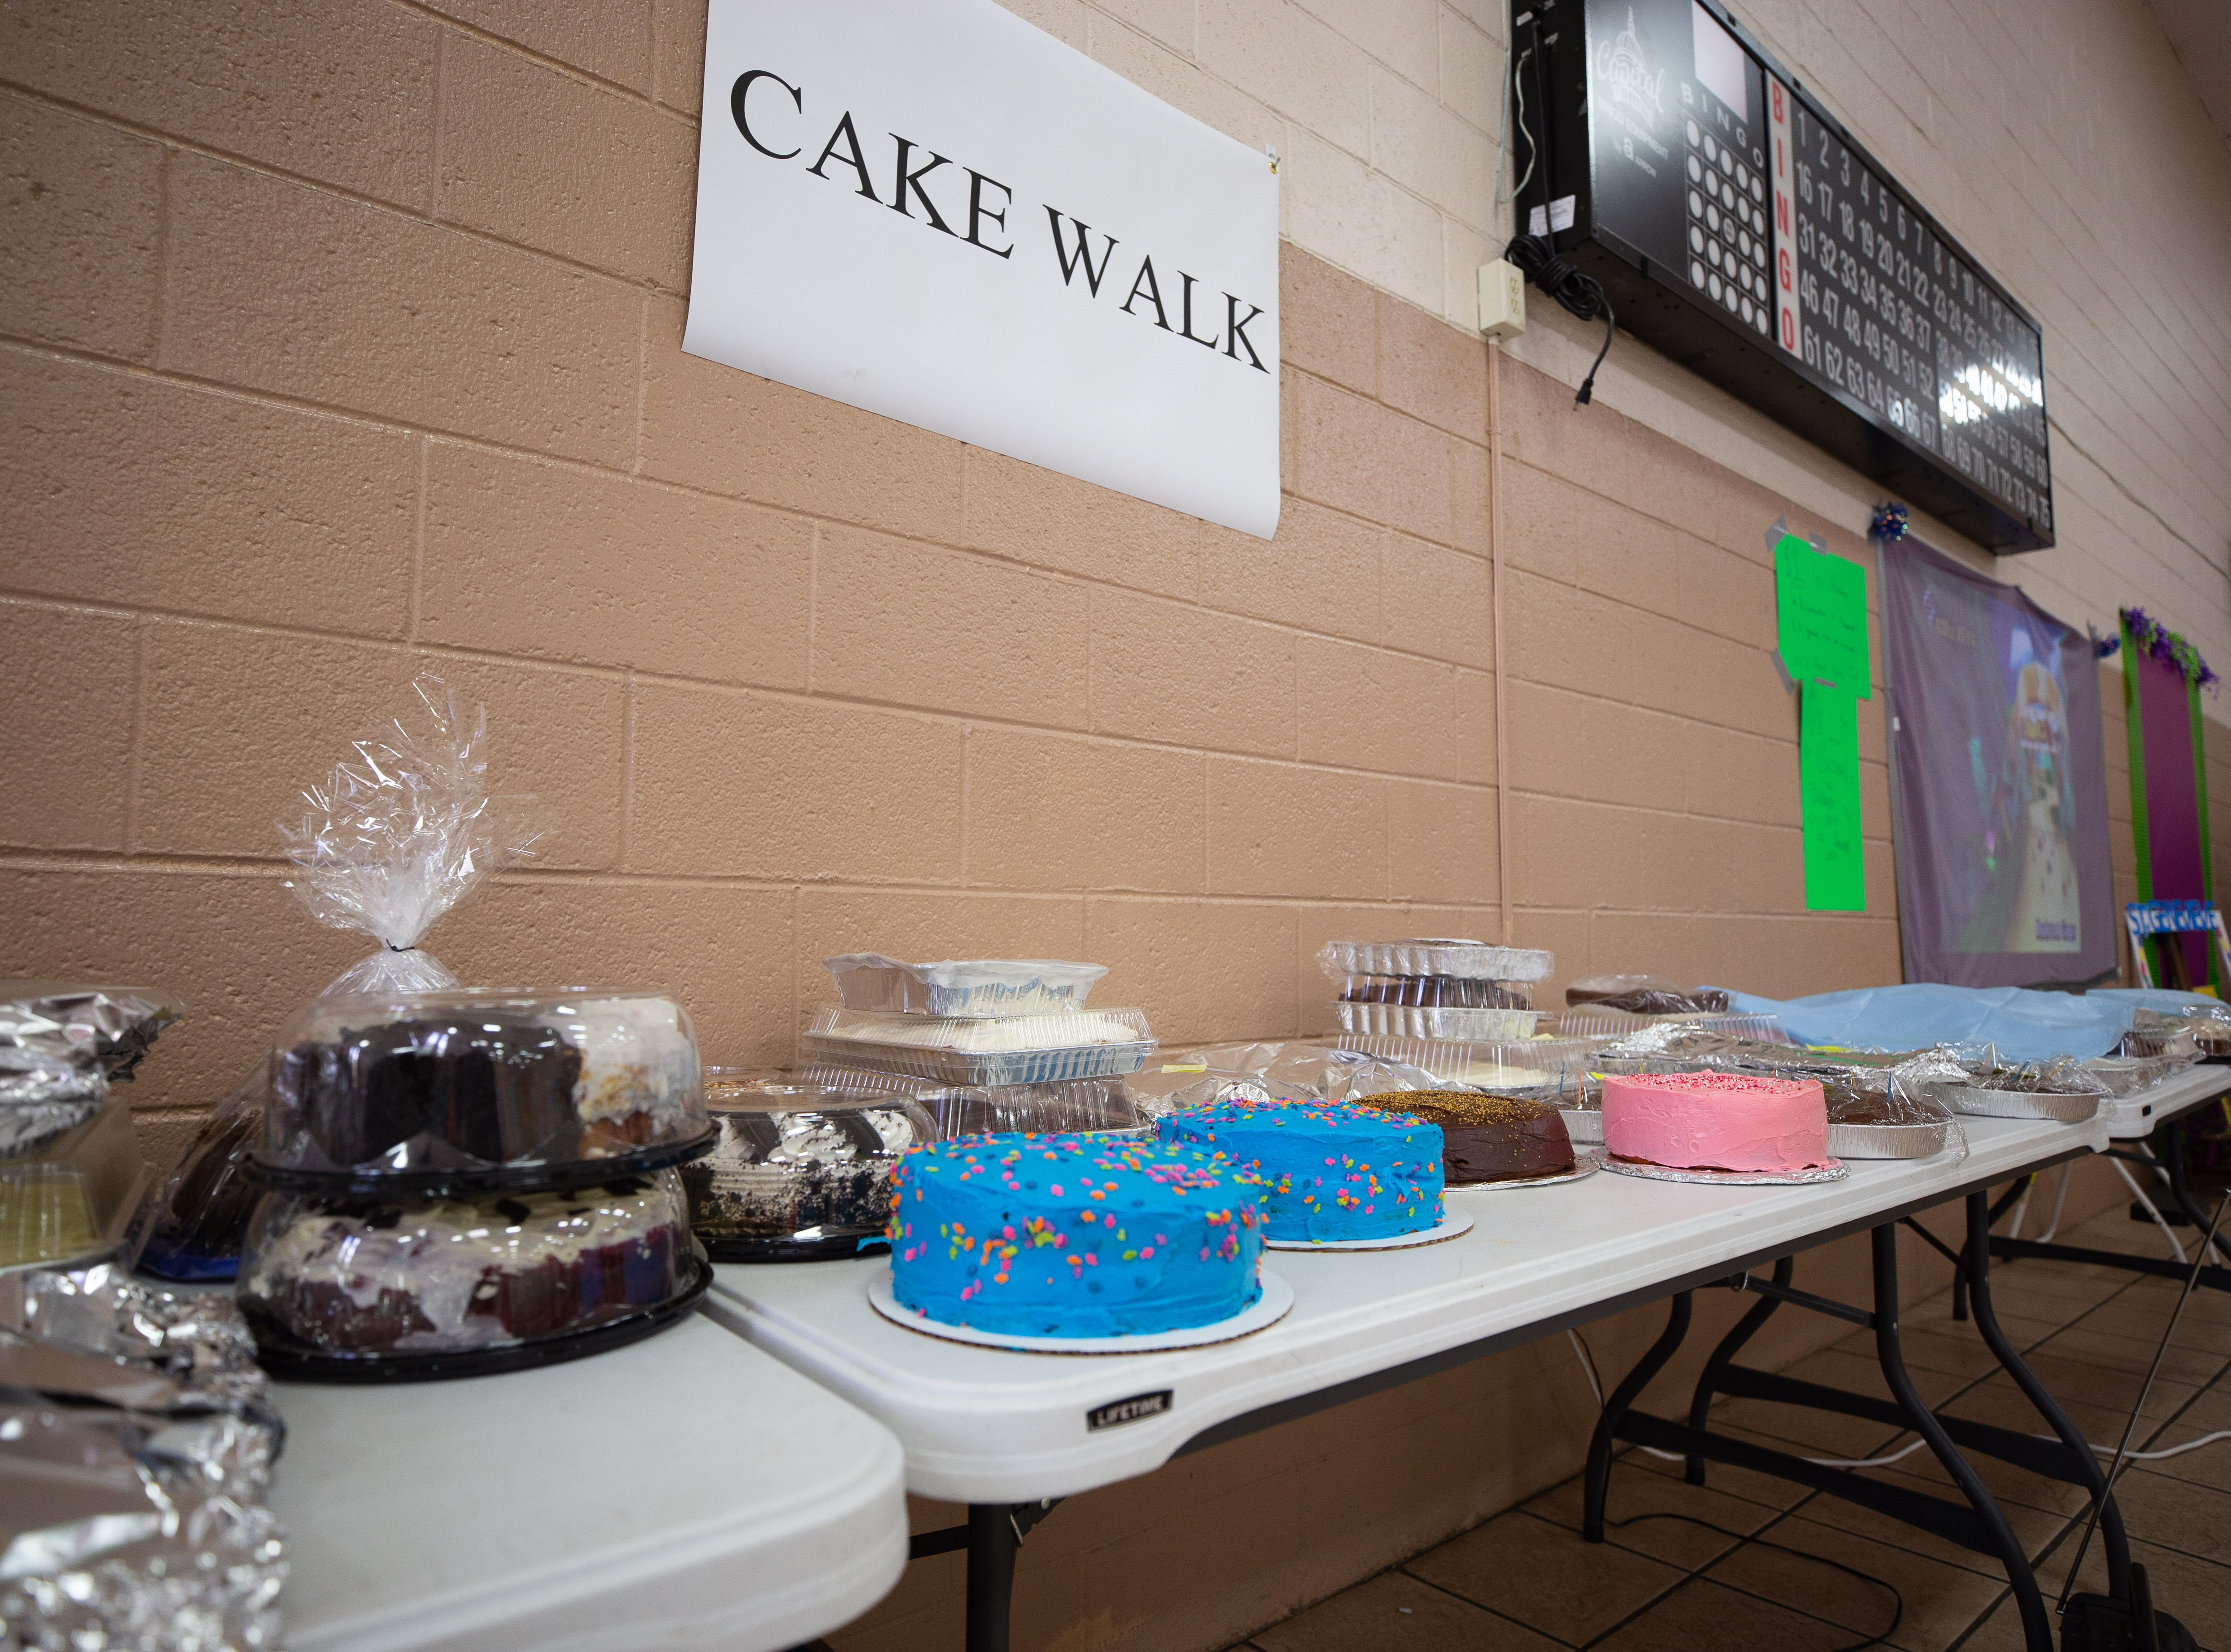 Colorful cakes await thier turn at the cakewalk booth at the St. Genevieve Fiesta on Saturday, Sept. 8, 2018.